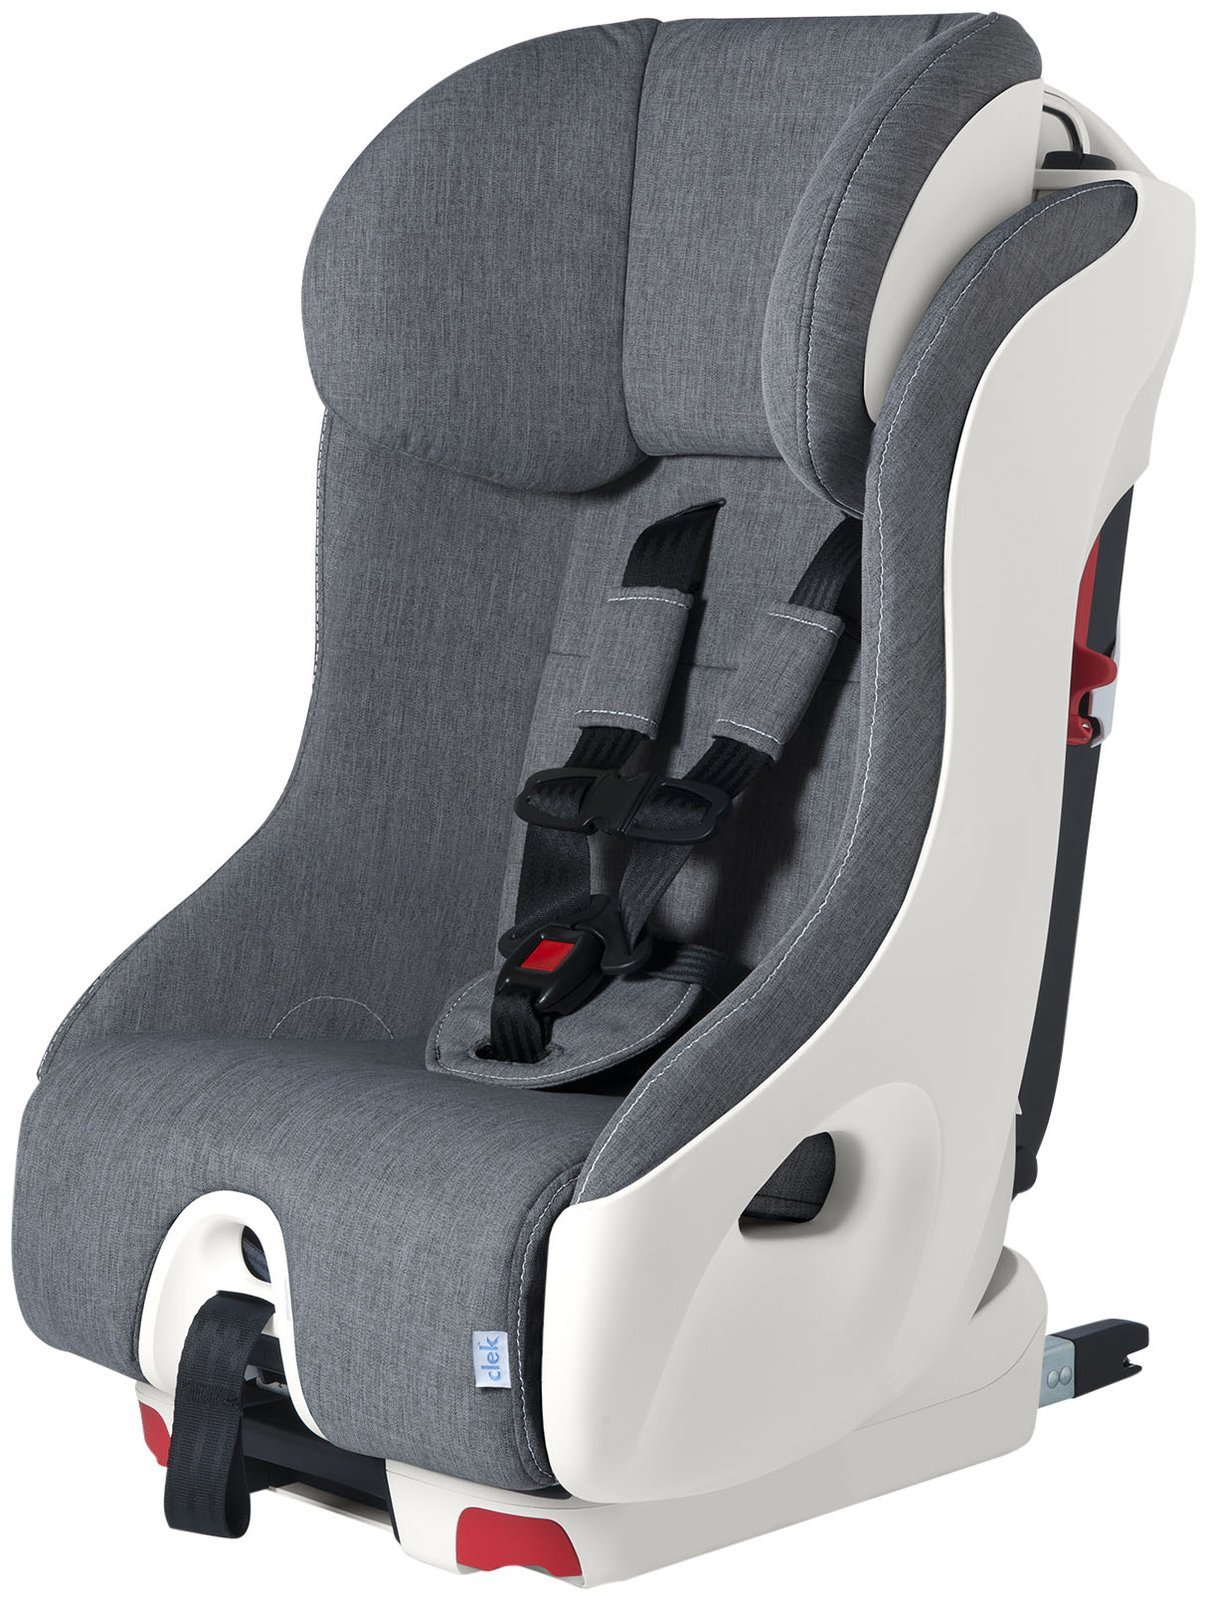 Clek Foonf Rigid Latch Convertible Baby and Toddler Car Seat, Rear and Forward Facing with Anti Rebound Bar,Cloud